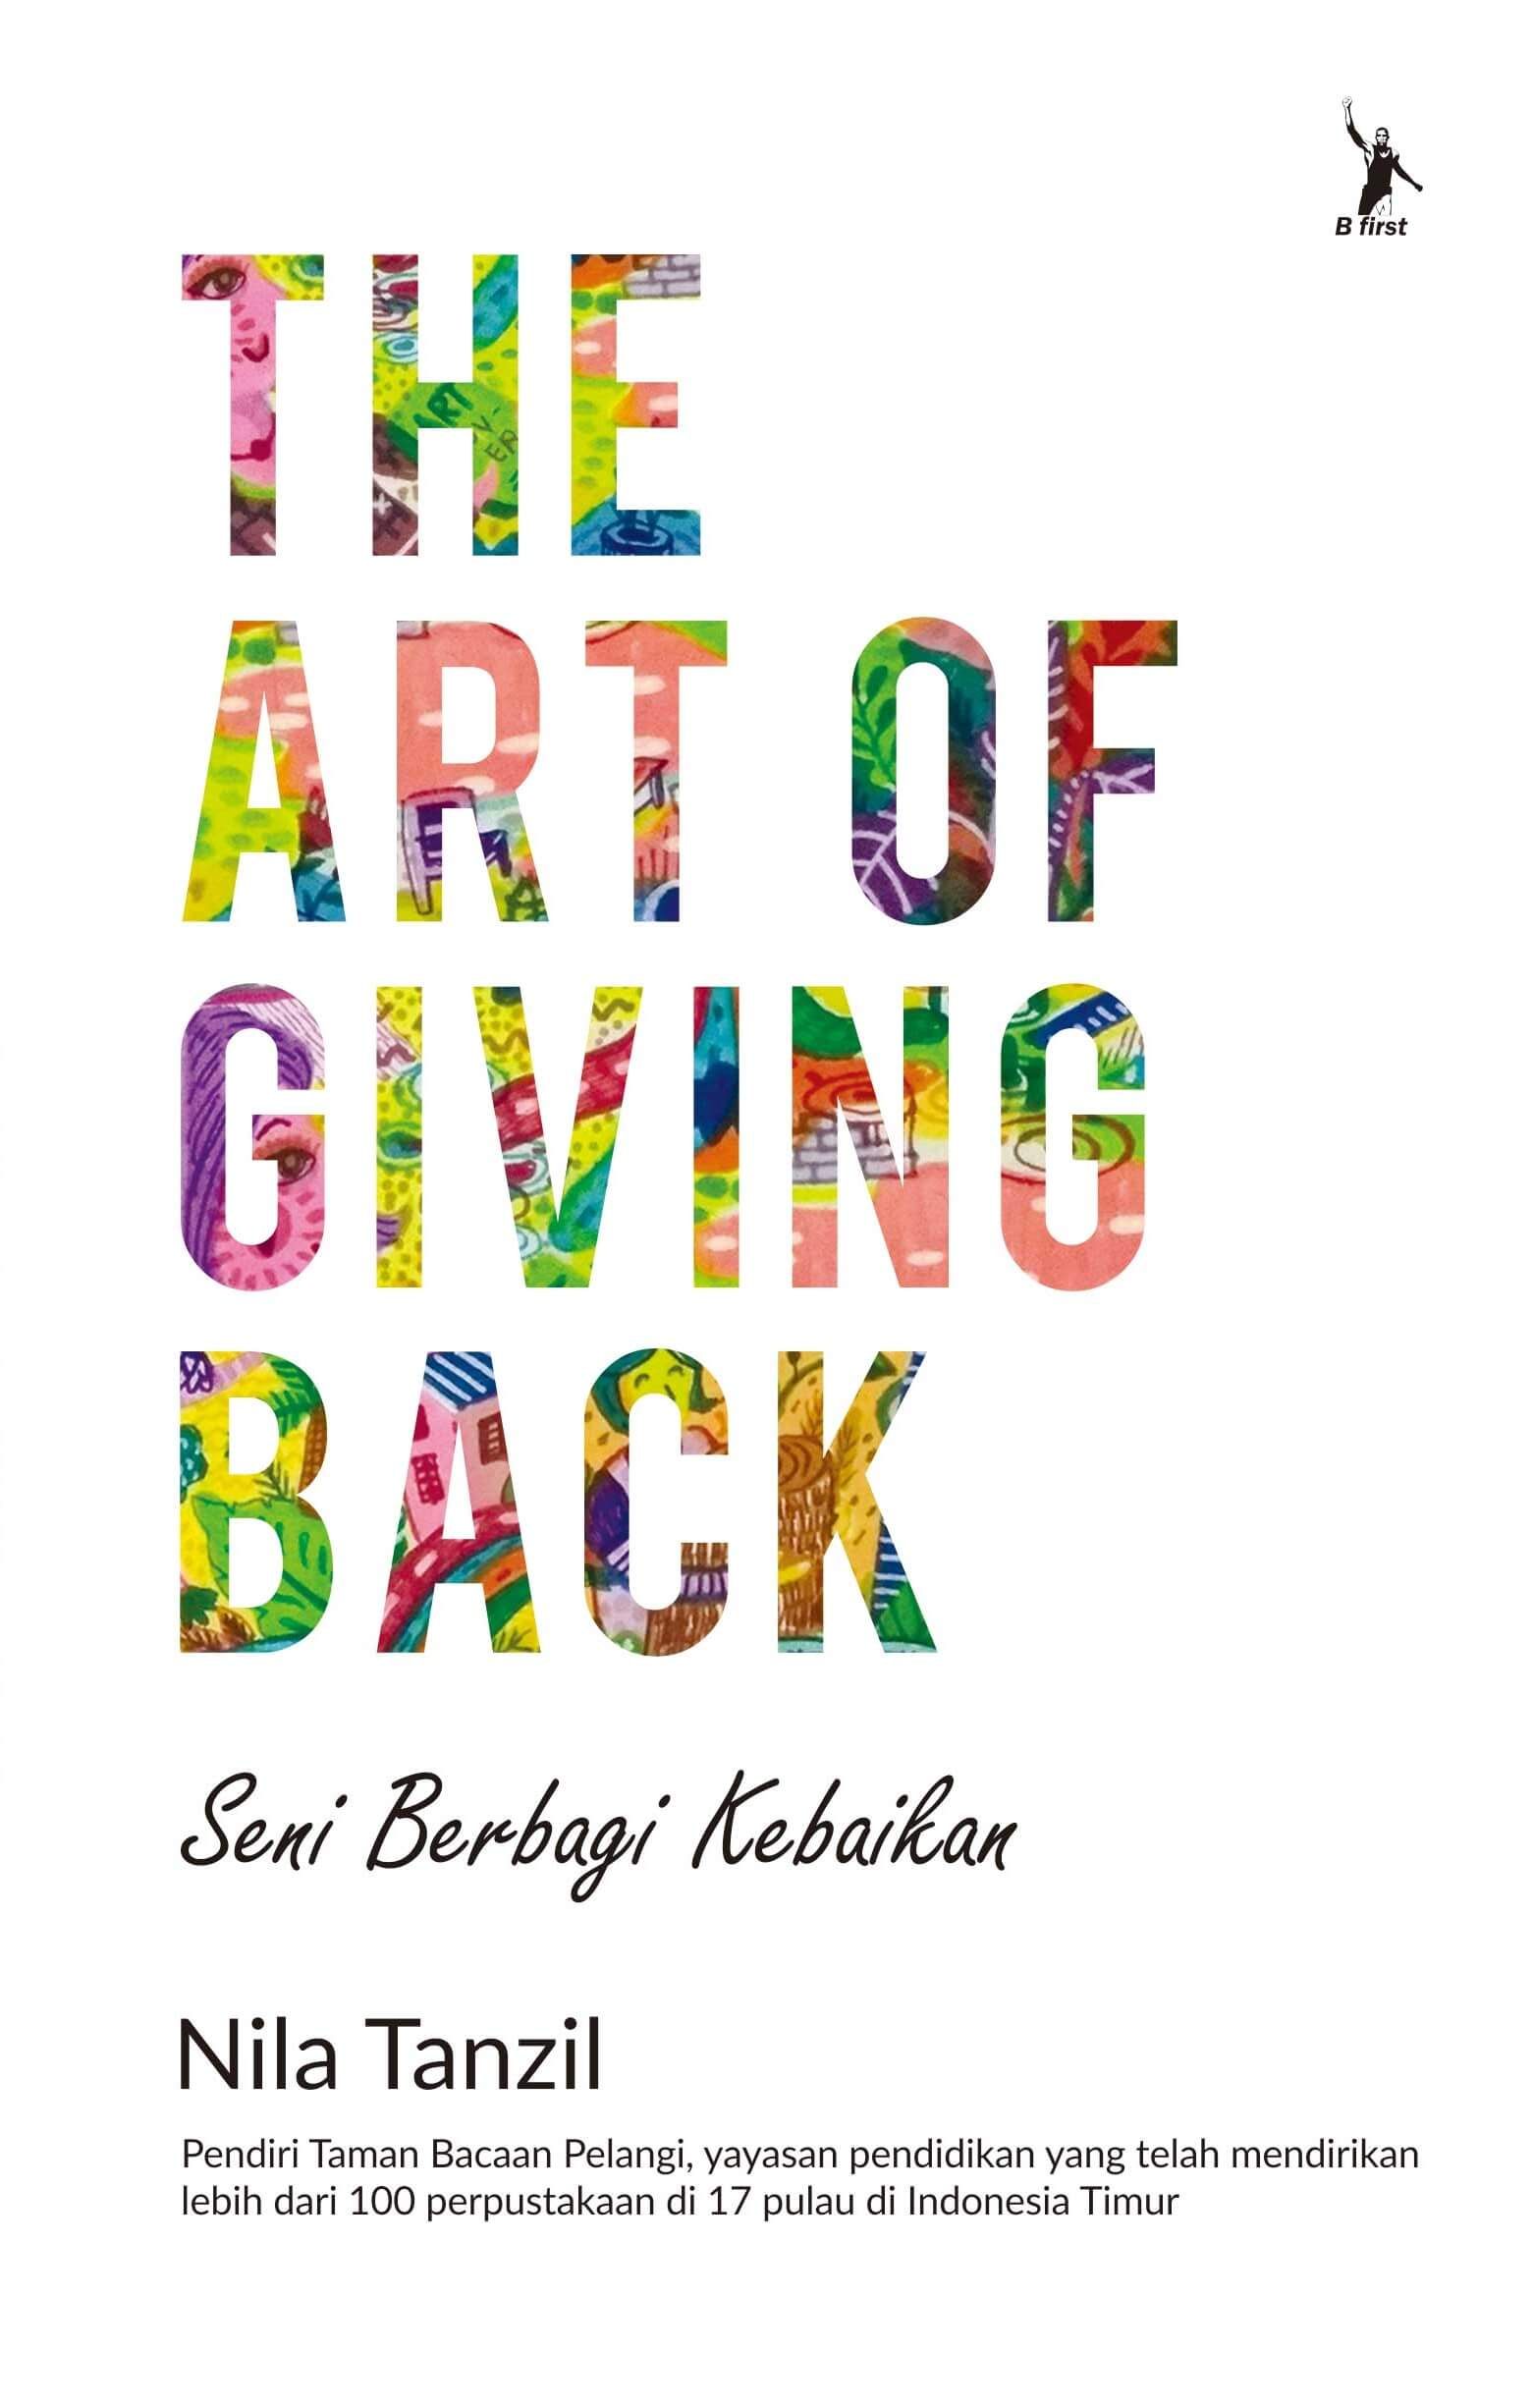 THE ART OF GIVING BACKen